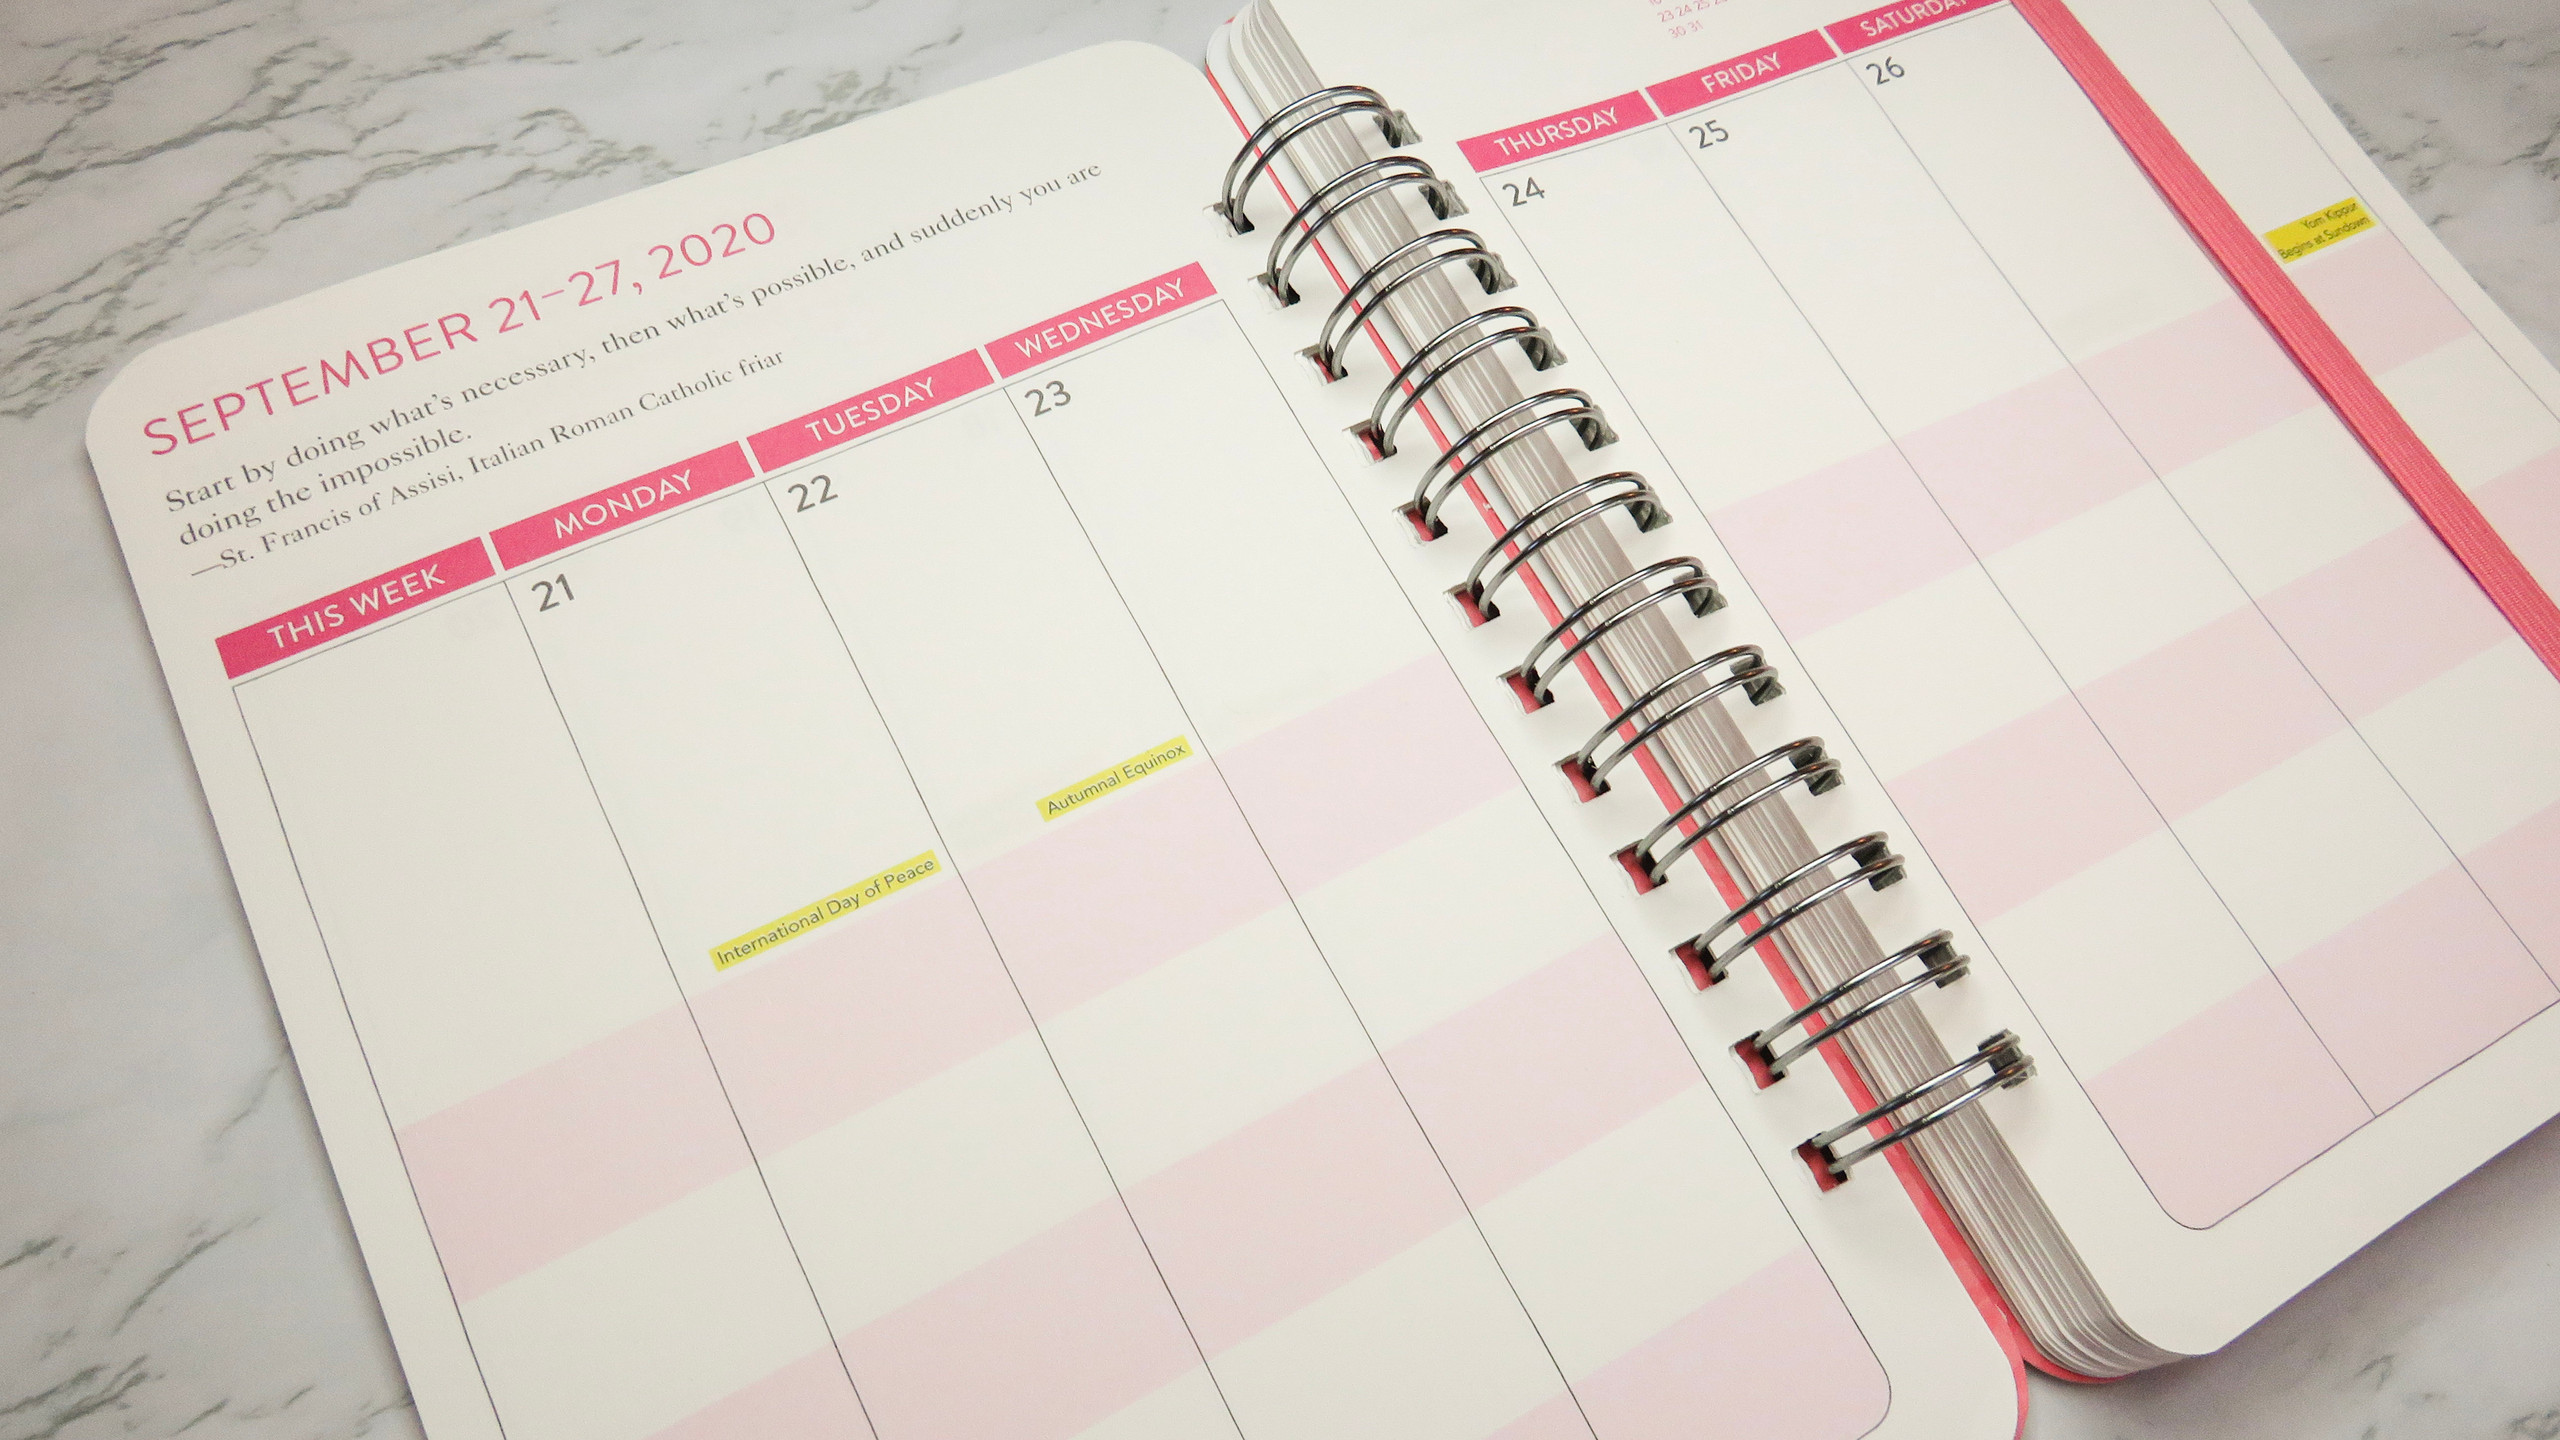 Weekly planner view of the Do It All Weekly Planner